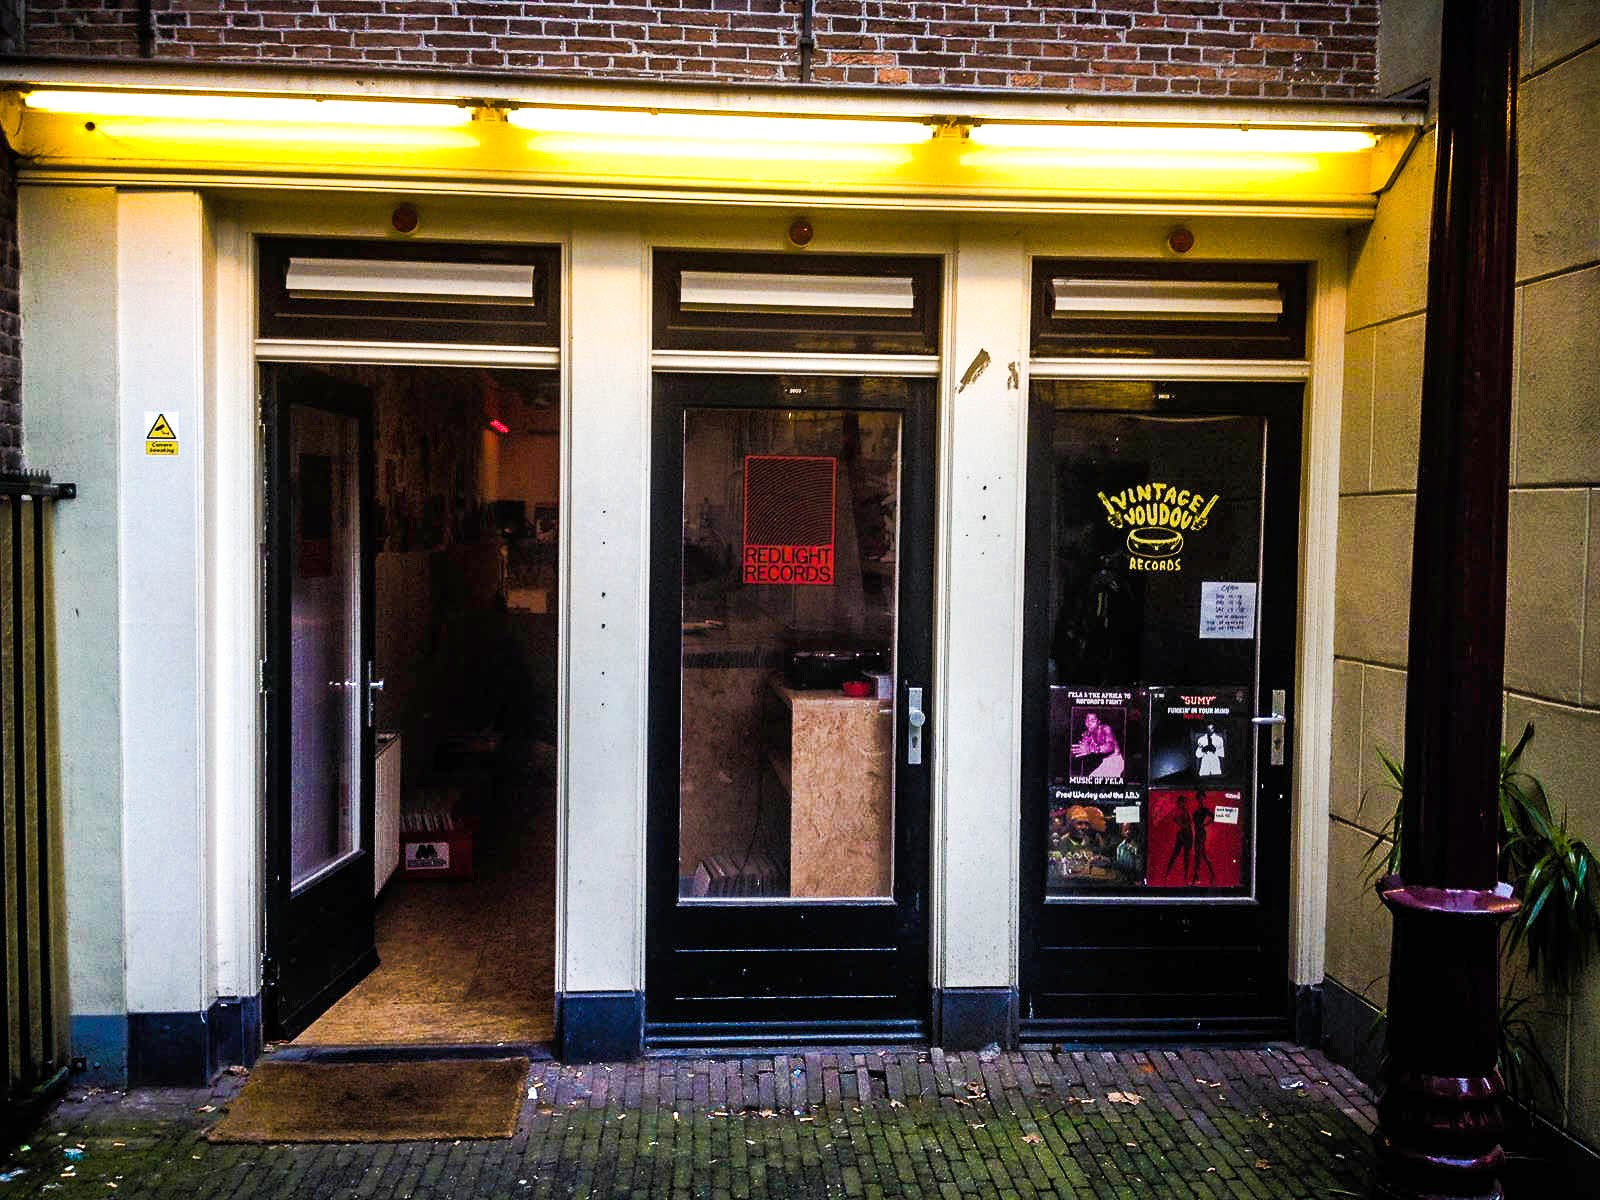 Amsterdam Redlight Records & Vintage Voudou art sound disquaires europe musique